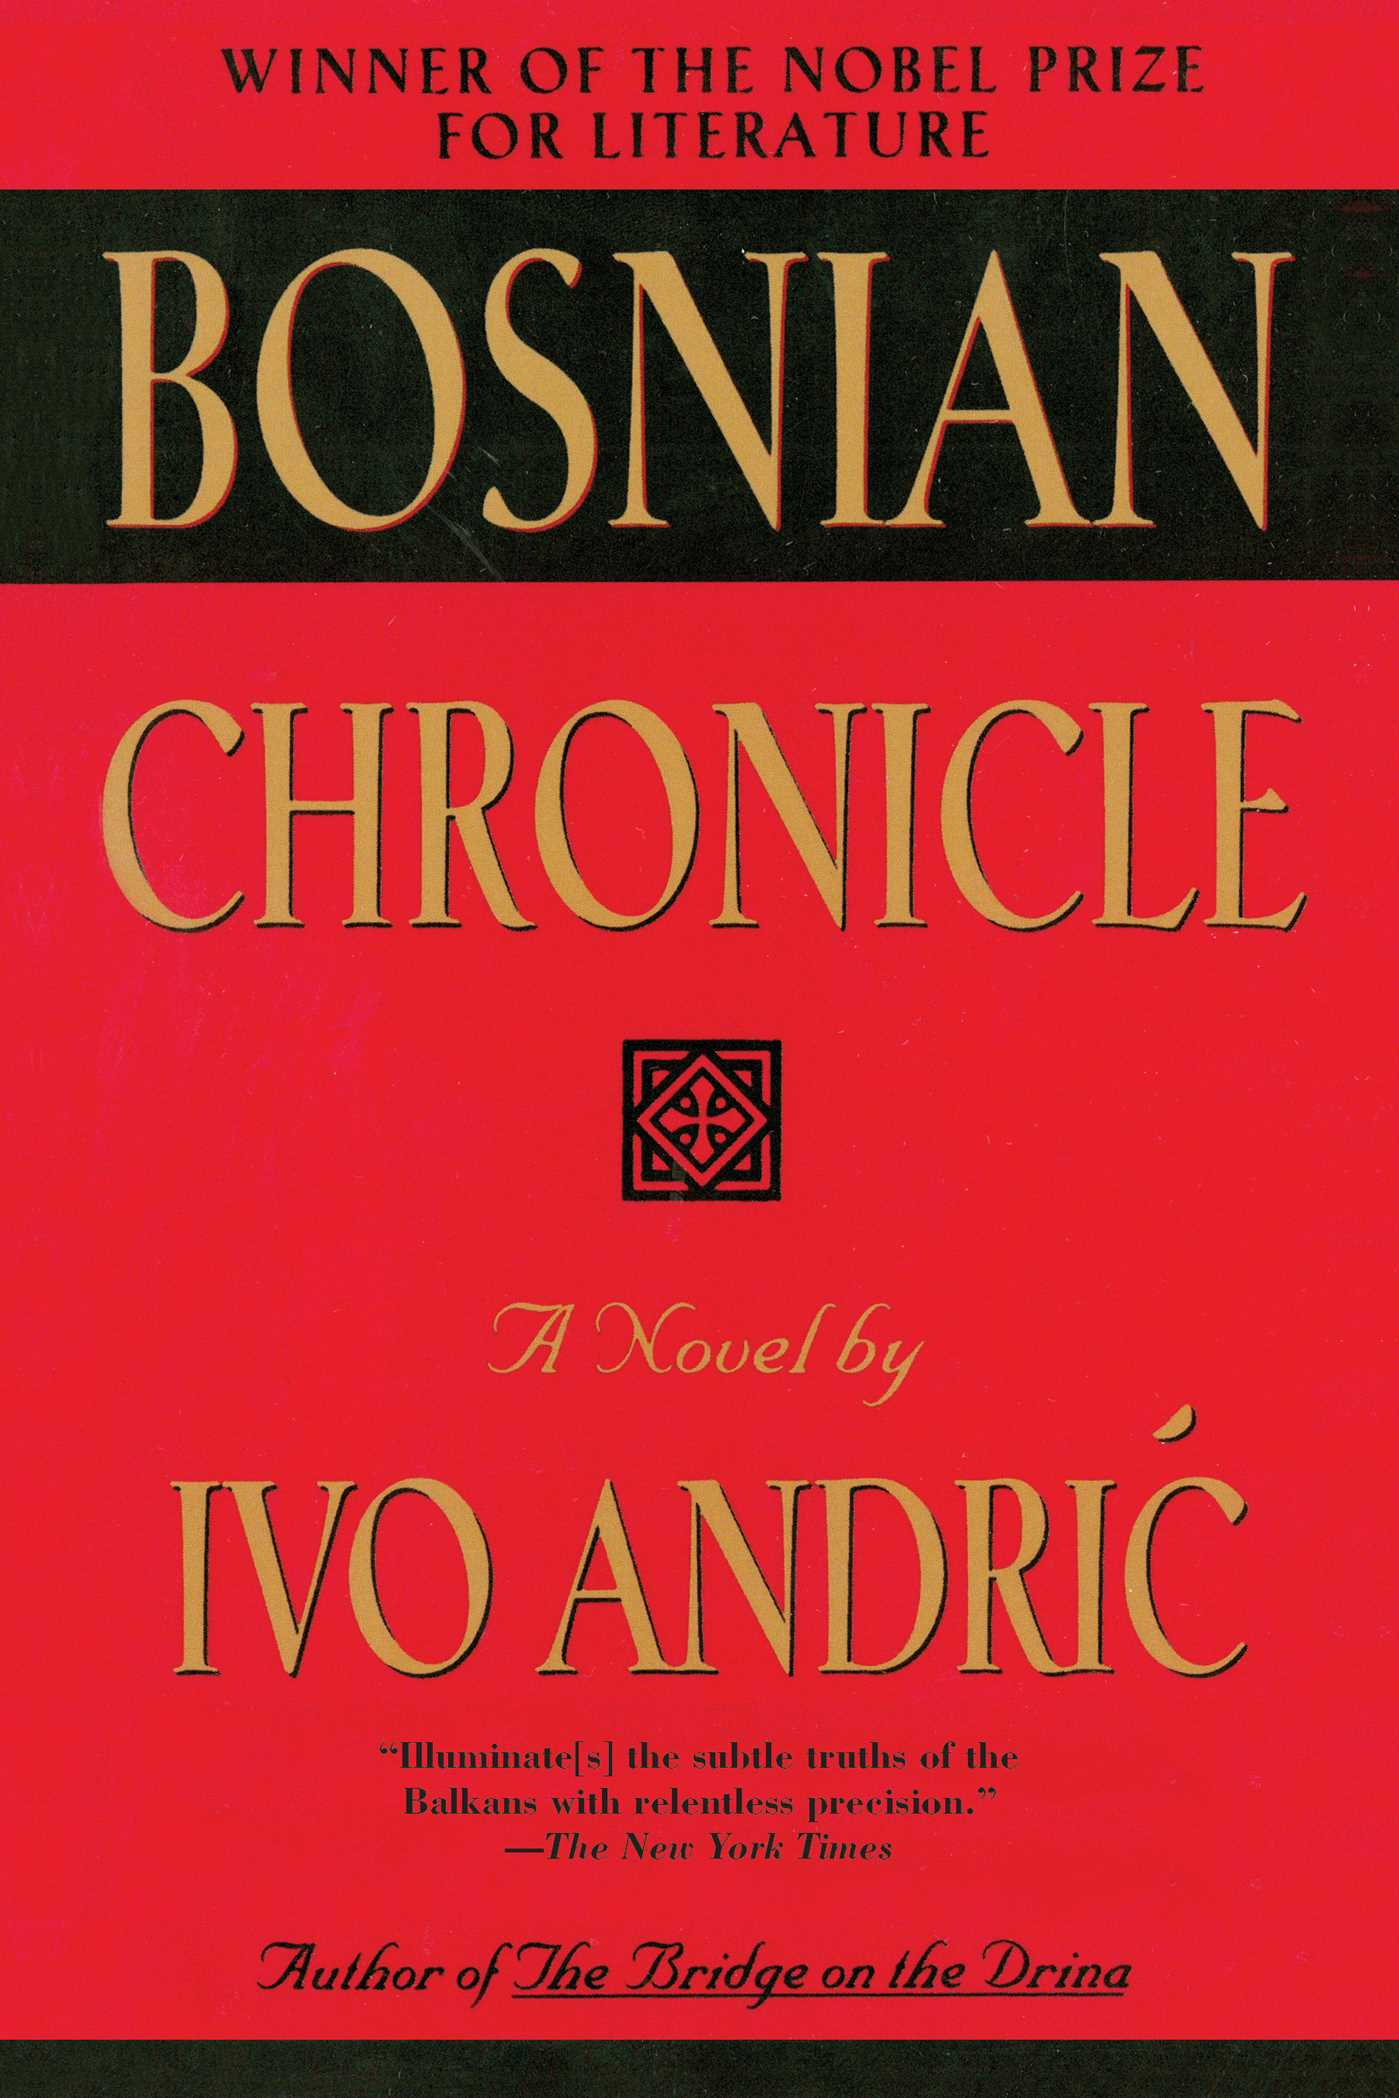 Image result for ivo andric bosnian chronicle images""